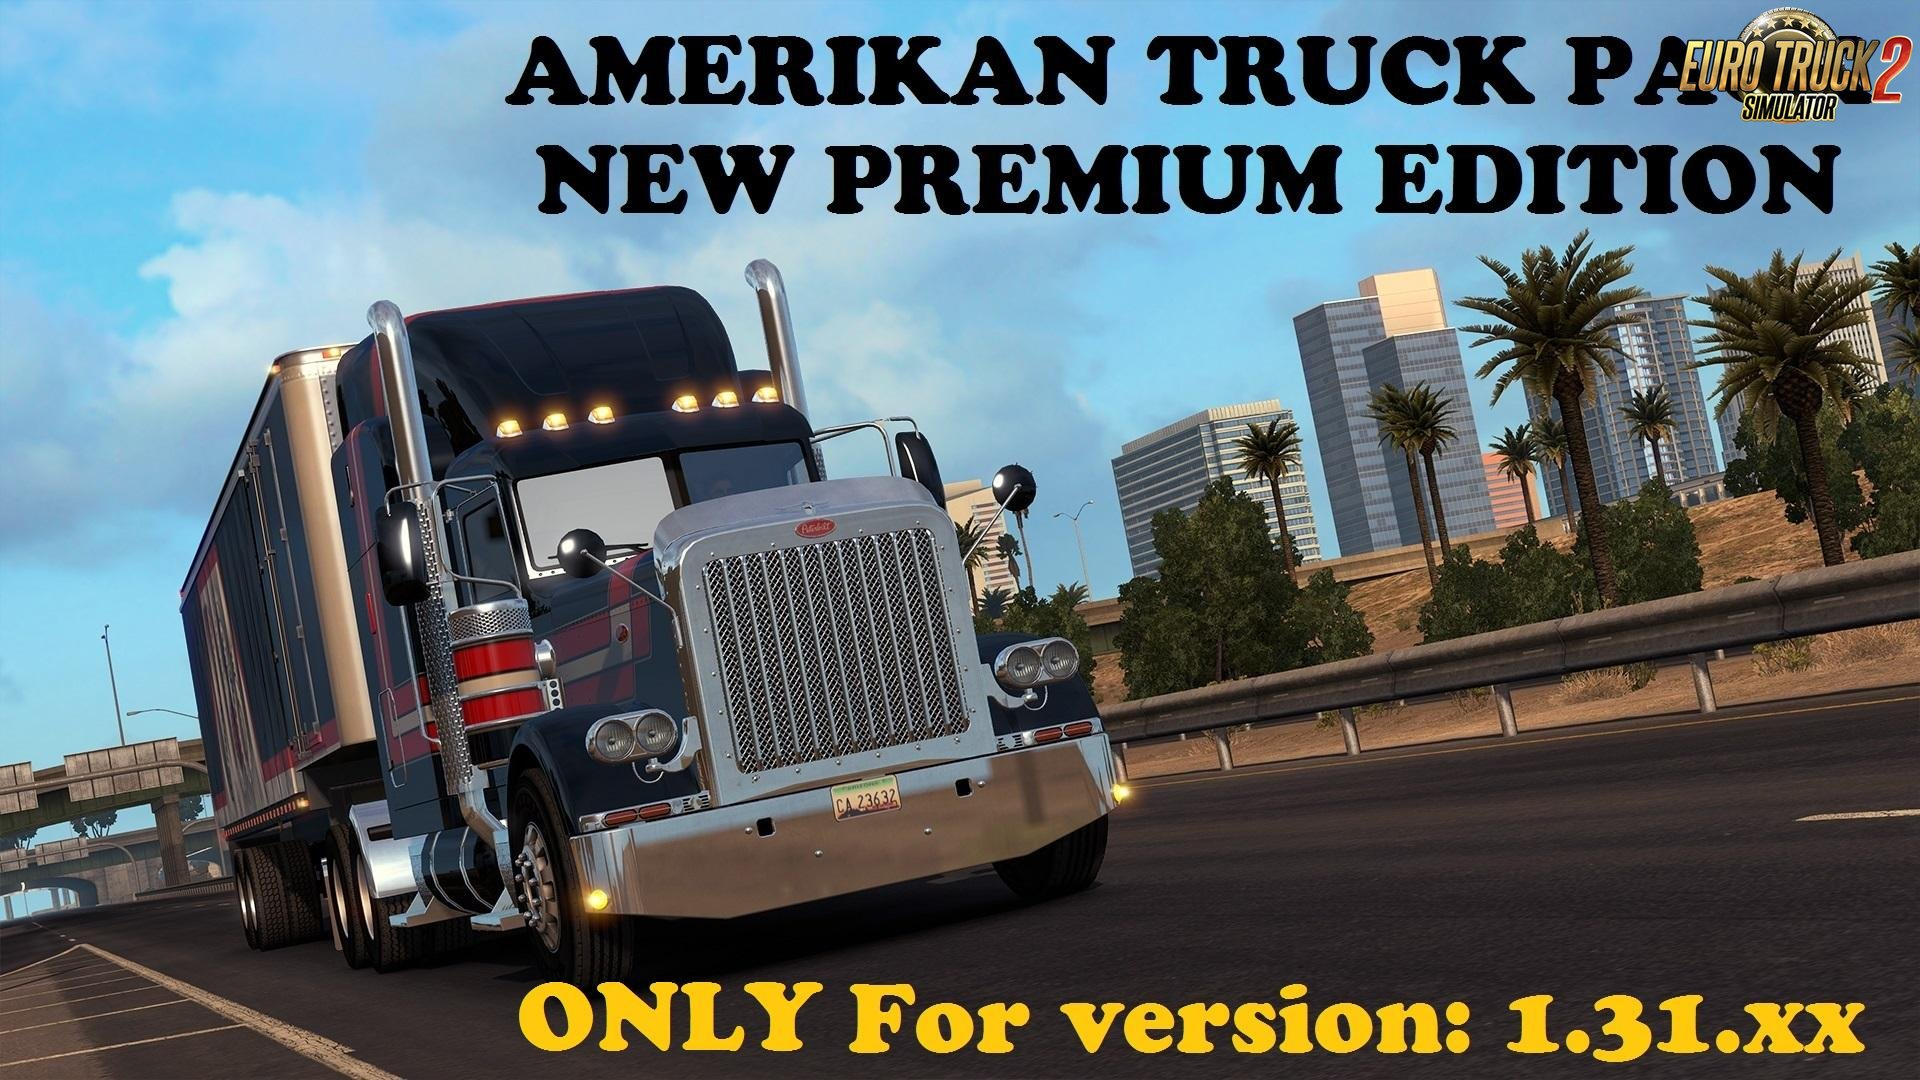 American Truck Pack – New Premium Edition (only 1.31.x)